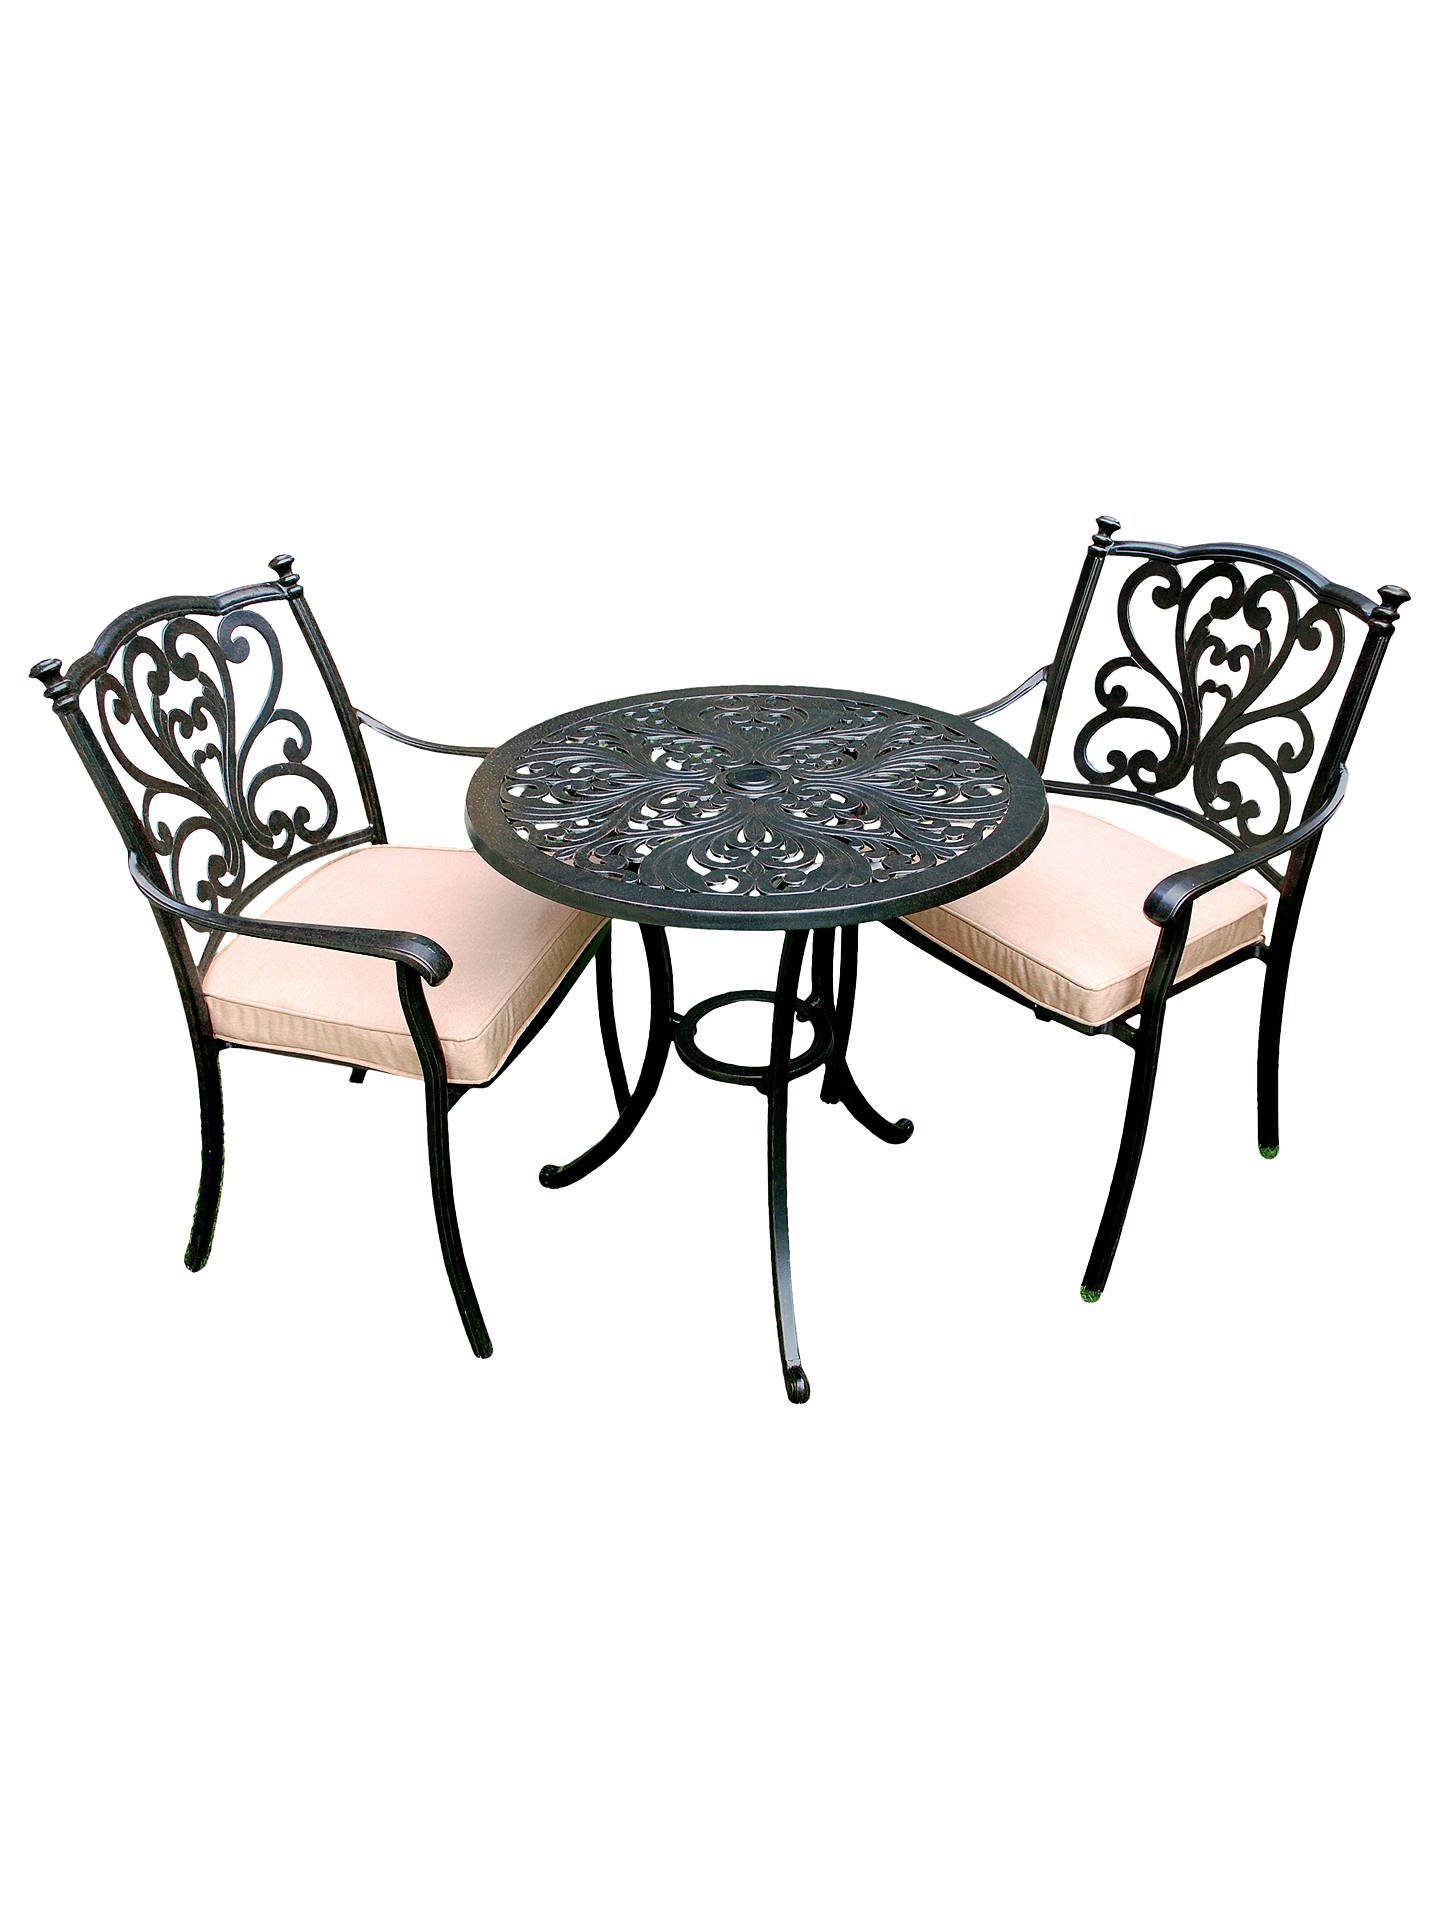 78963c5520fe Buy LG Outdoor Devon 2 Seater Garden Bistro Table and Chairs Set, Bronze  Online at ...